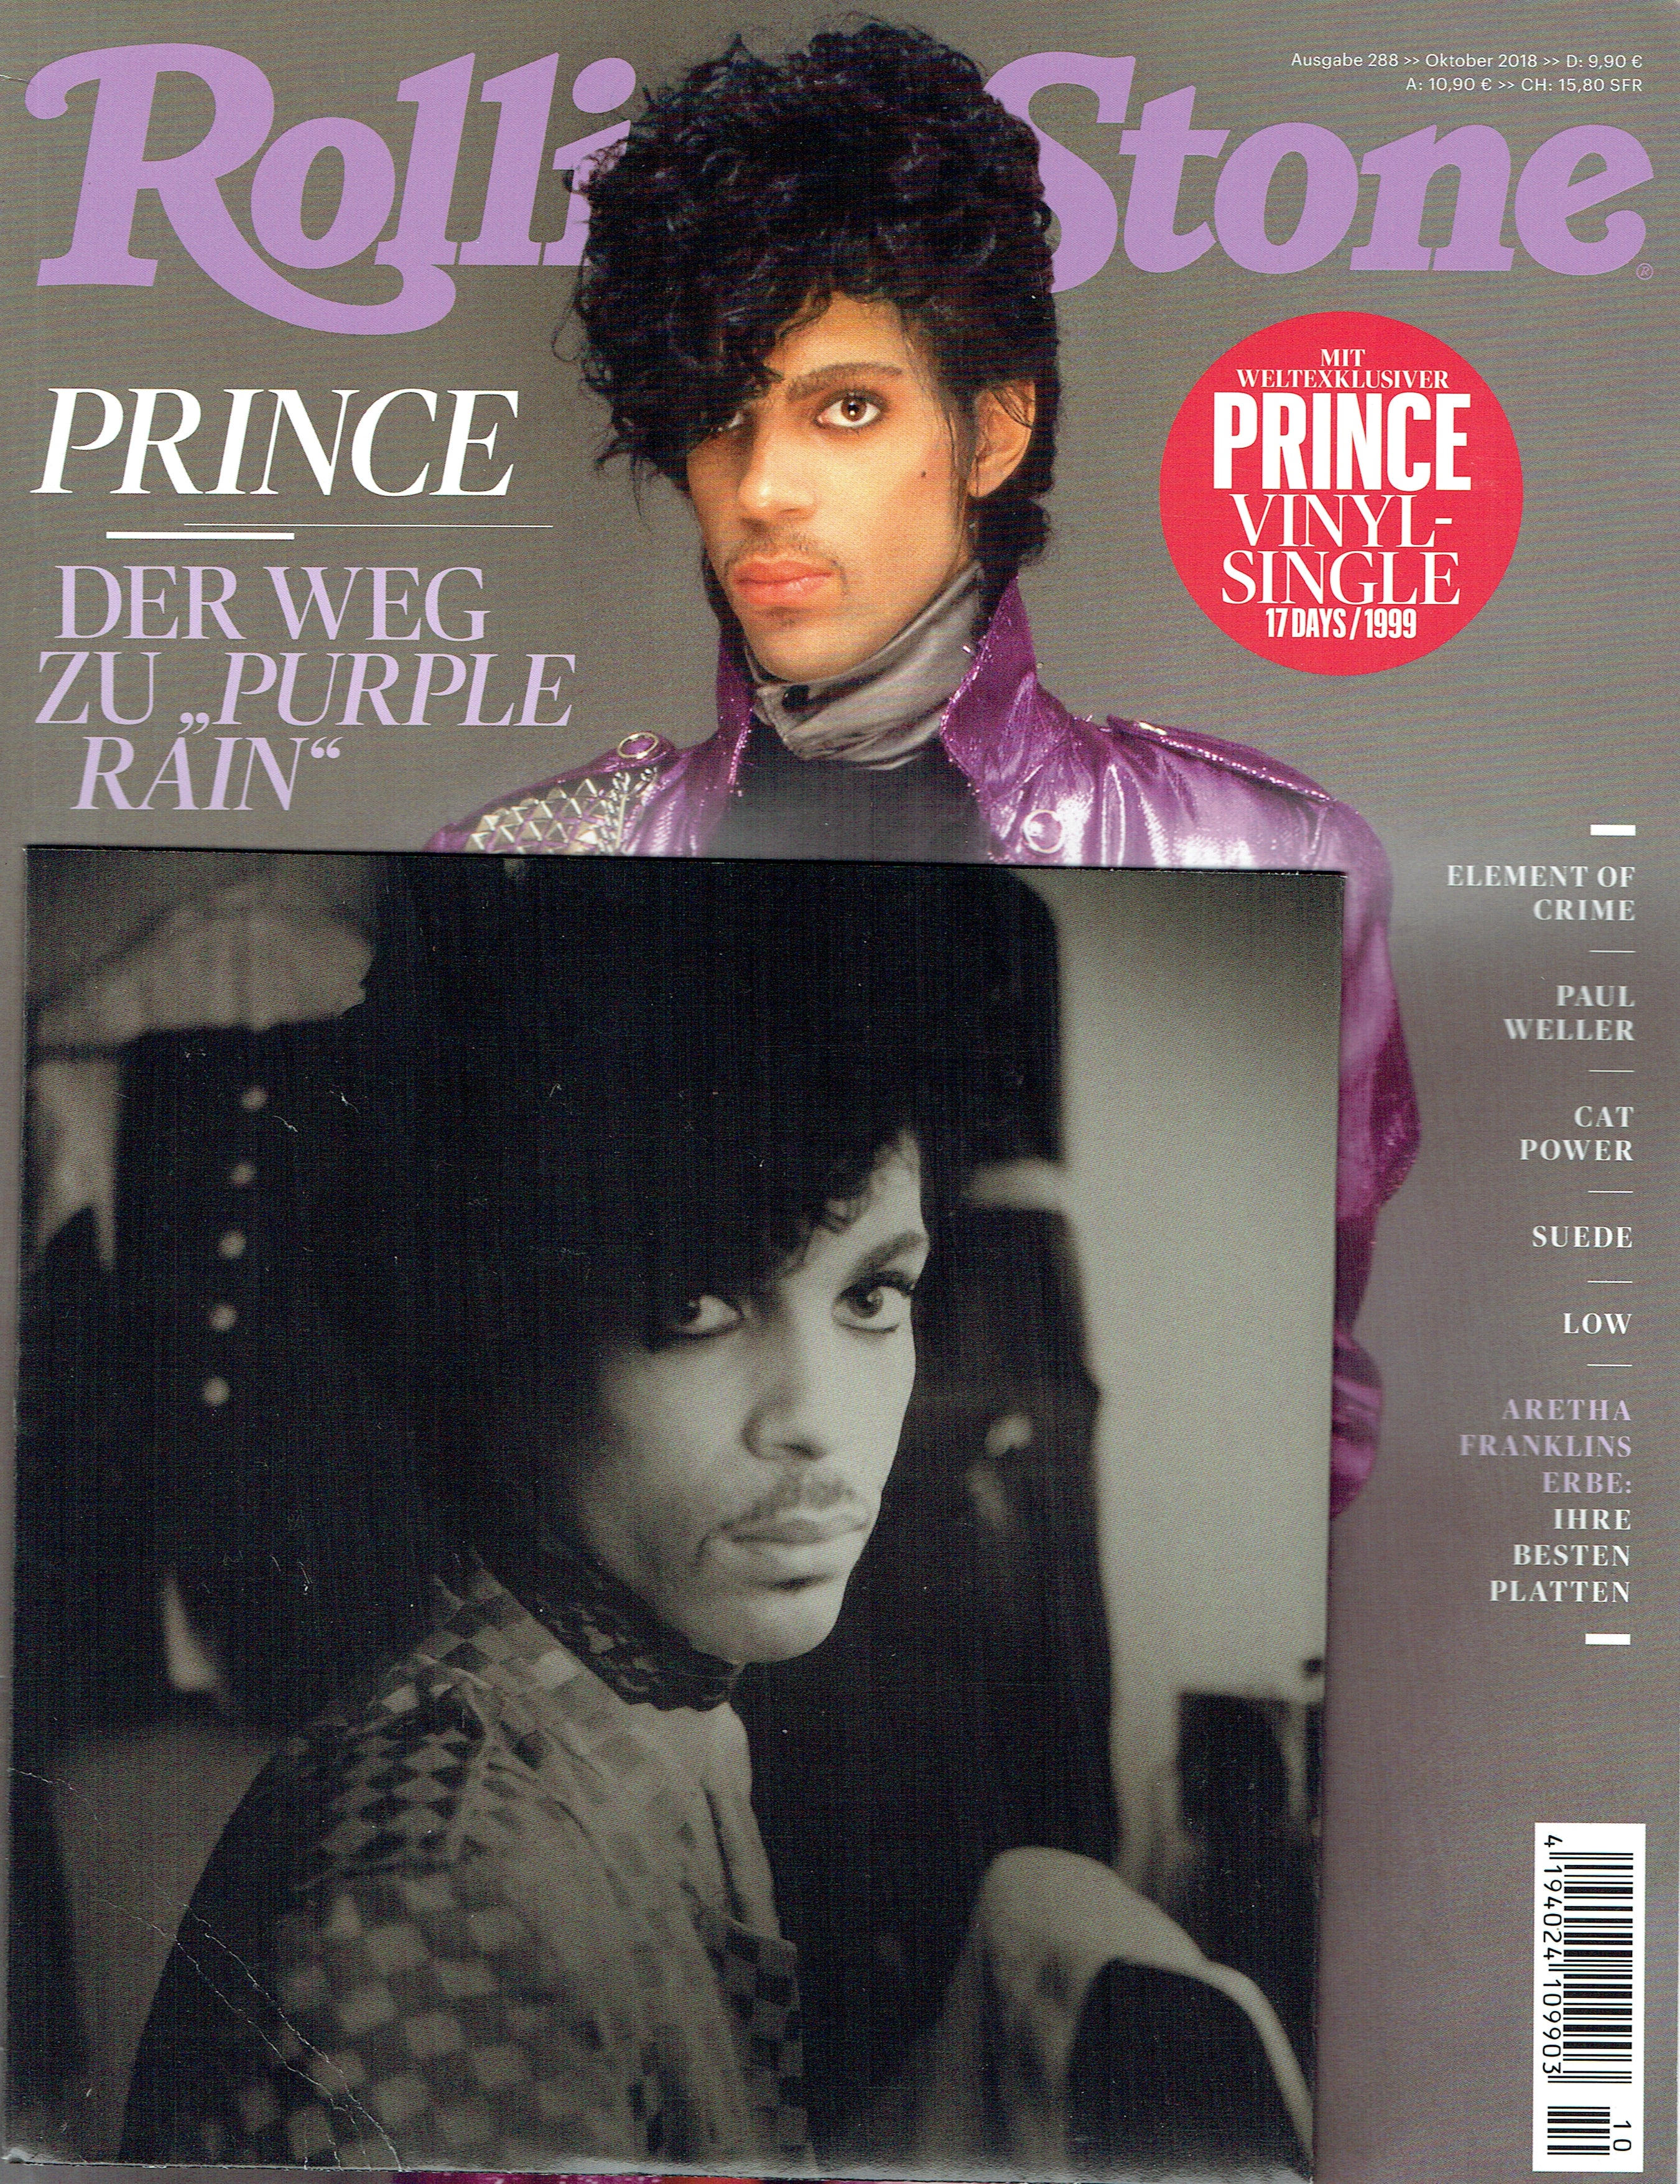 Prince Rolling Stone Magazine Issue October 2018 7 inch Vinyl Single 17 Days